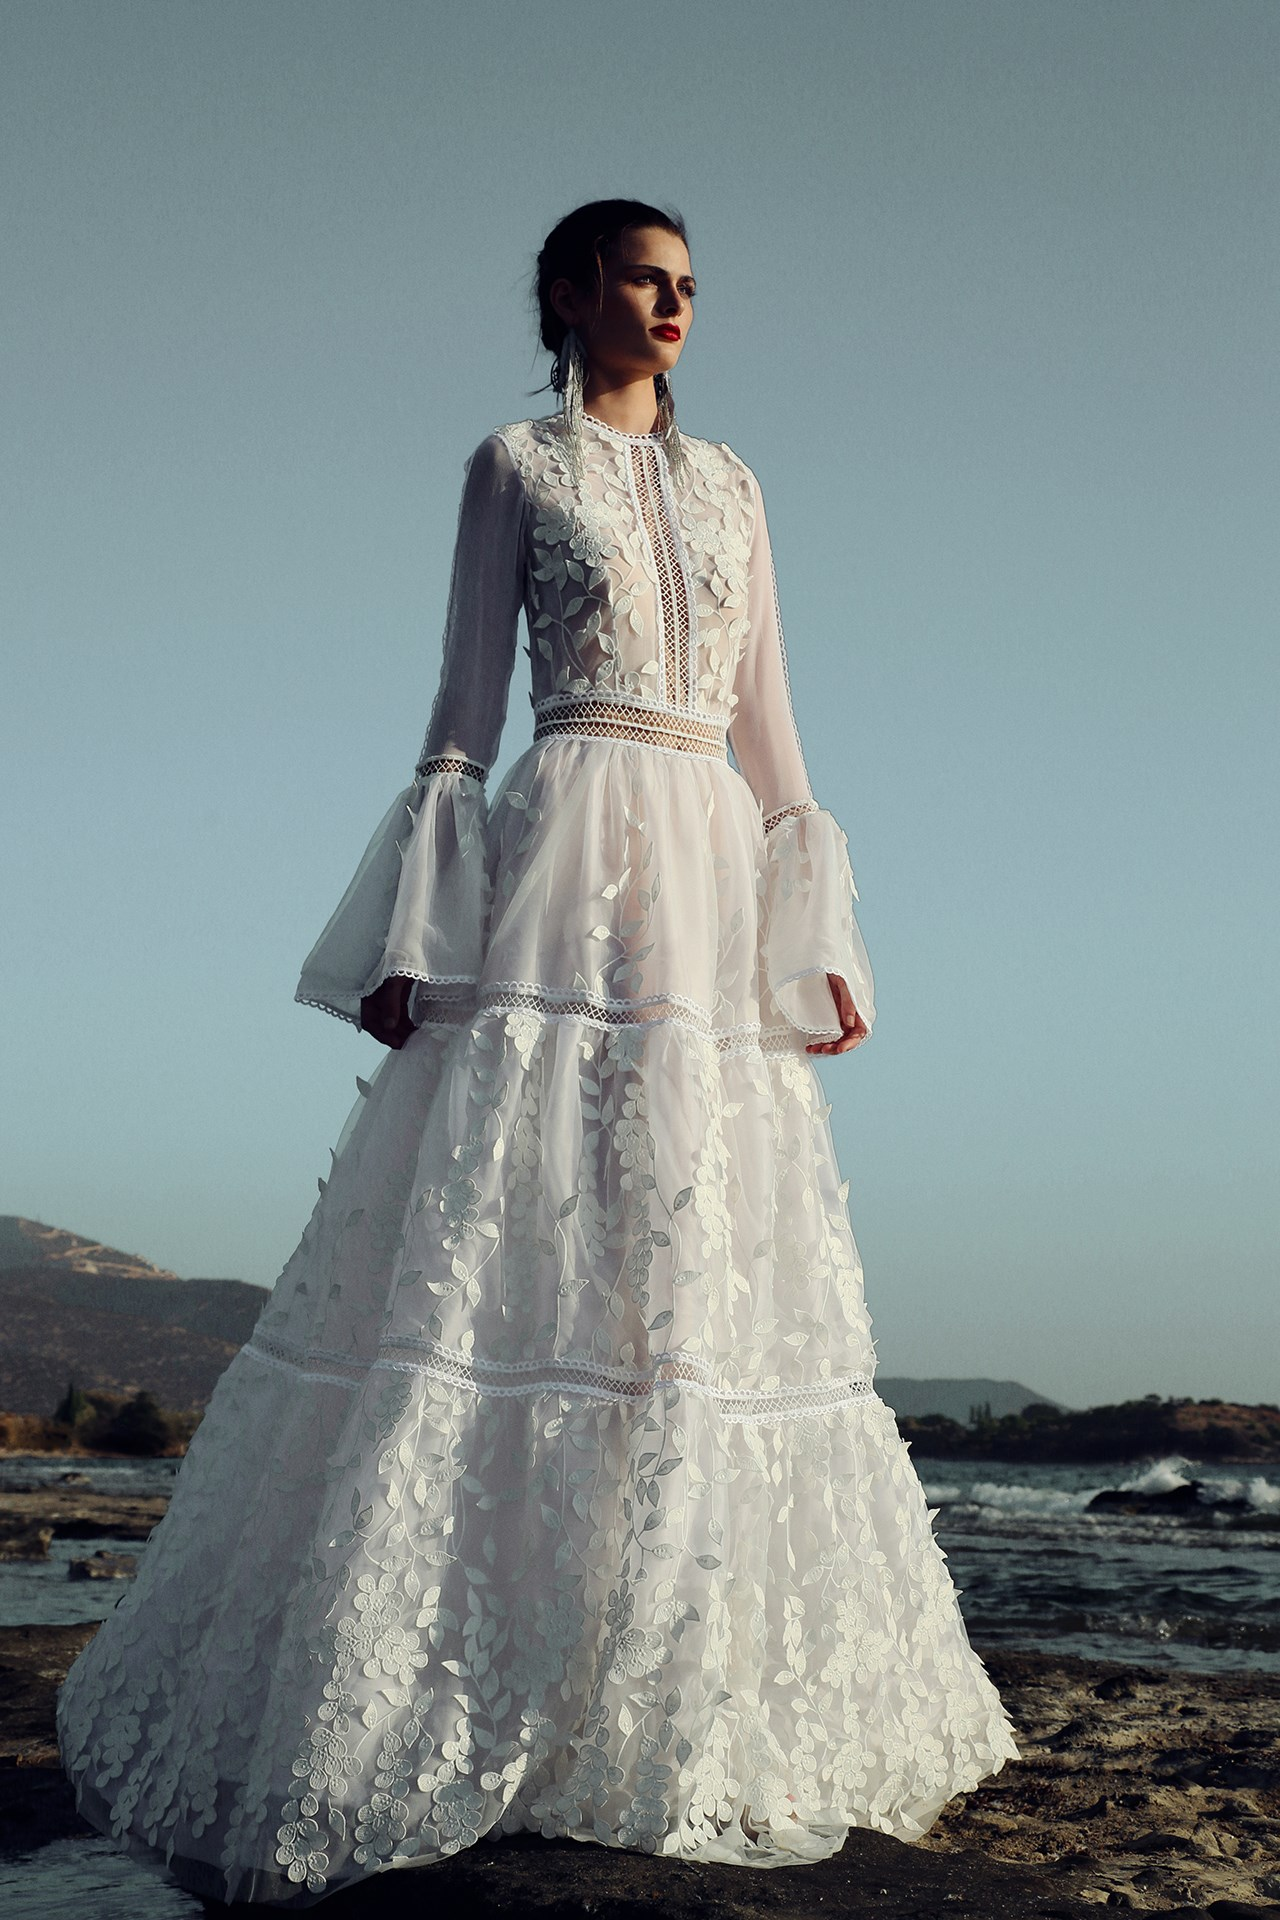 winter wedding dresses for 2017 (bridesmagazine.co.uk) zdujyma